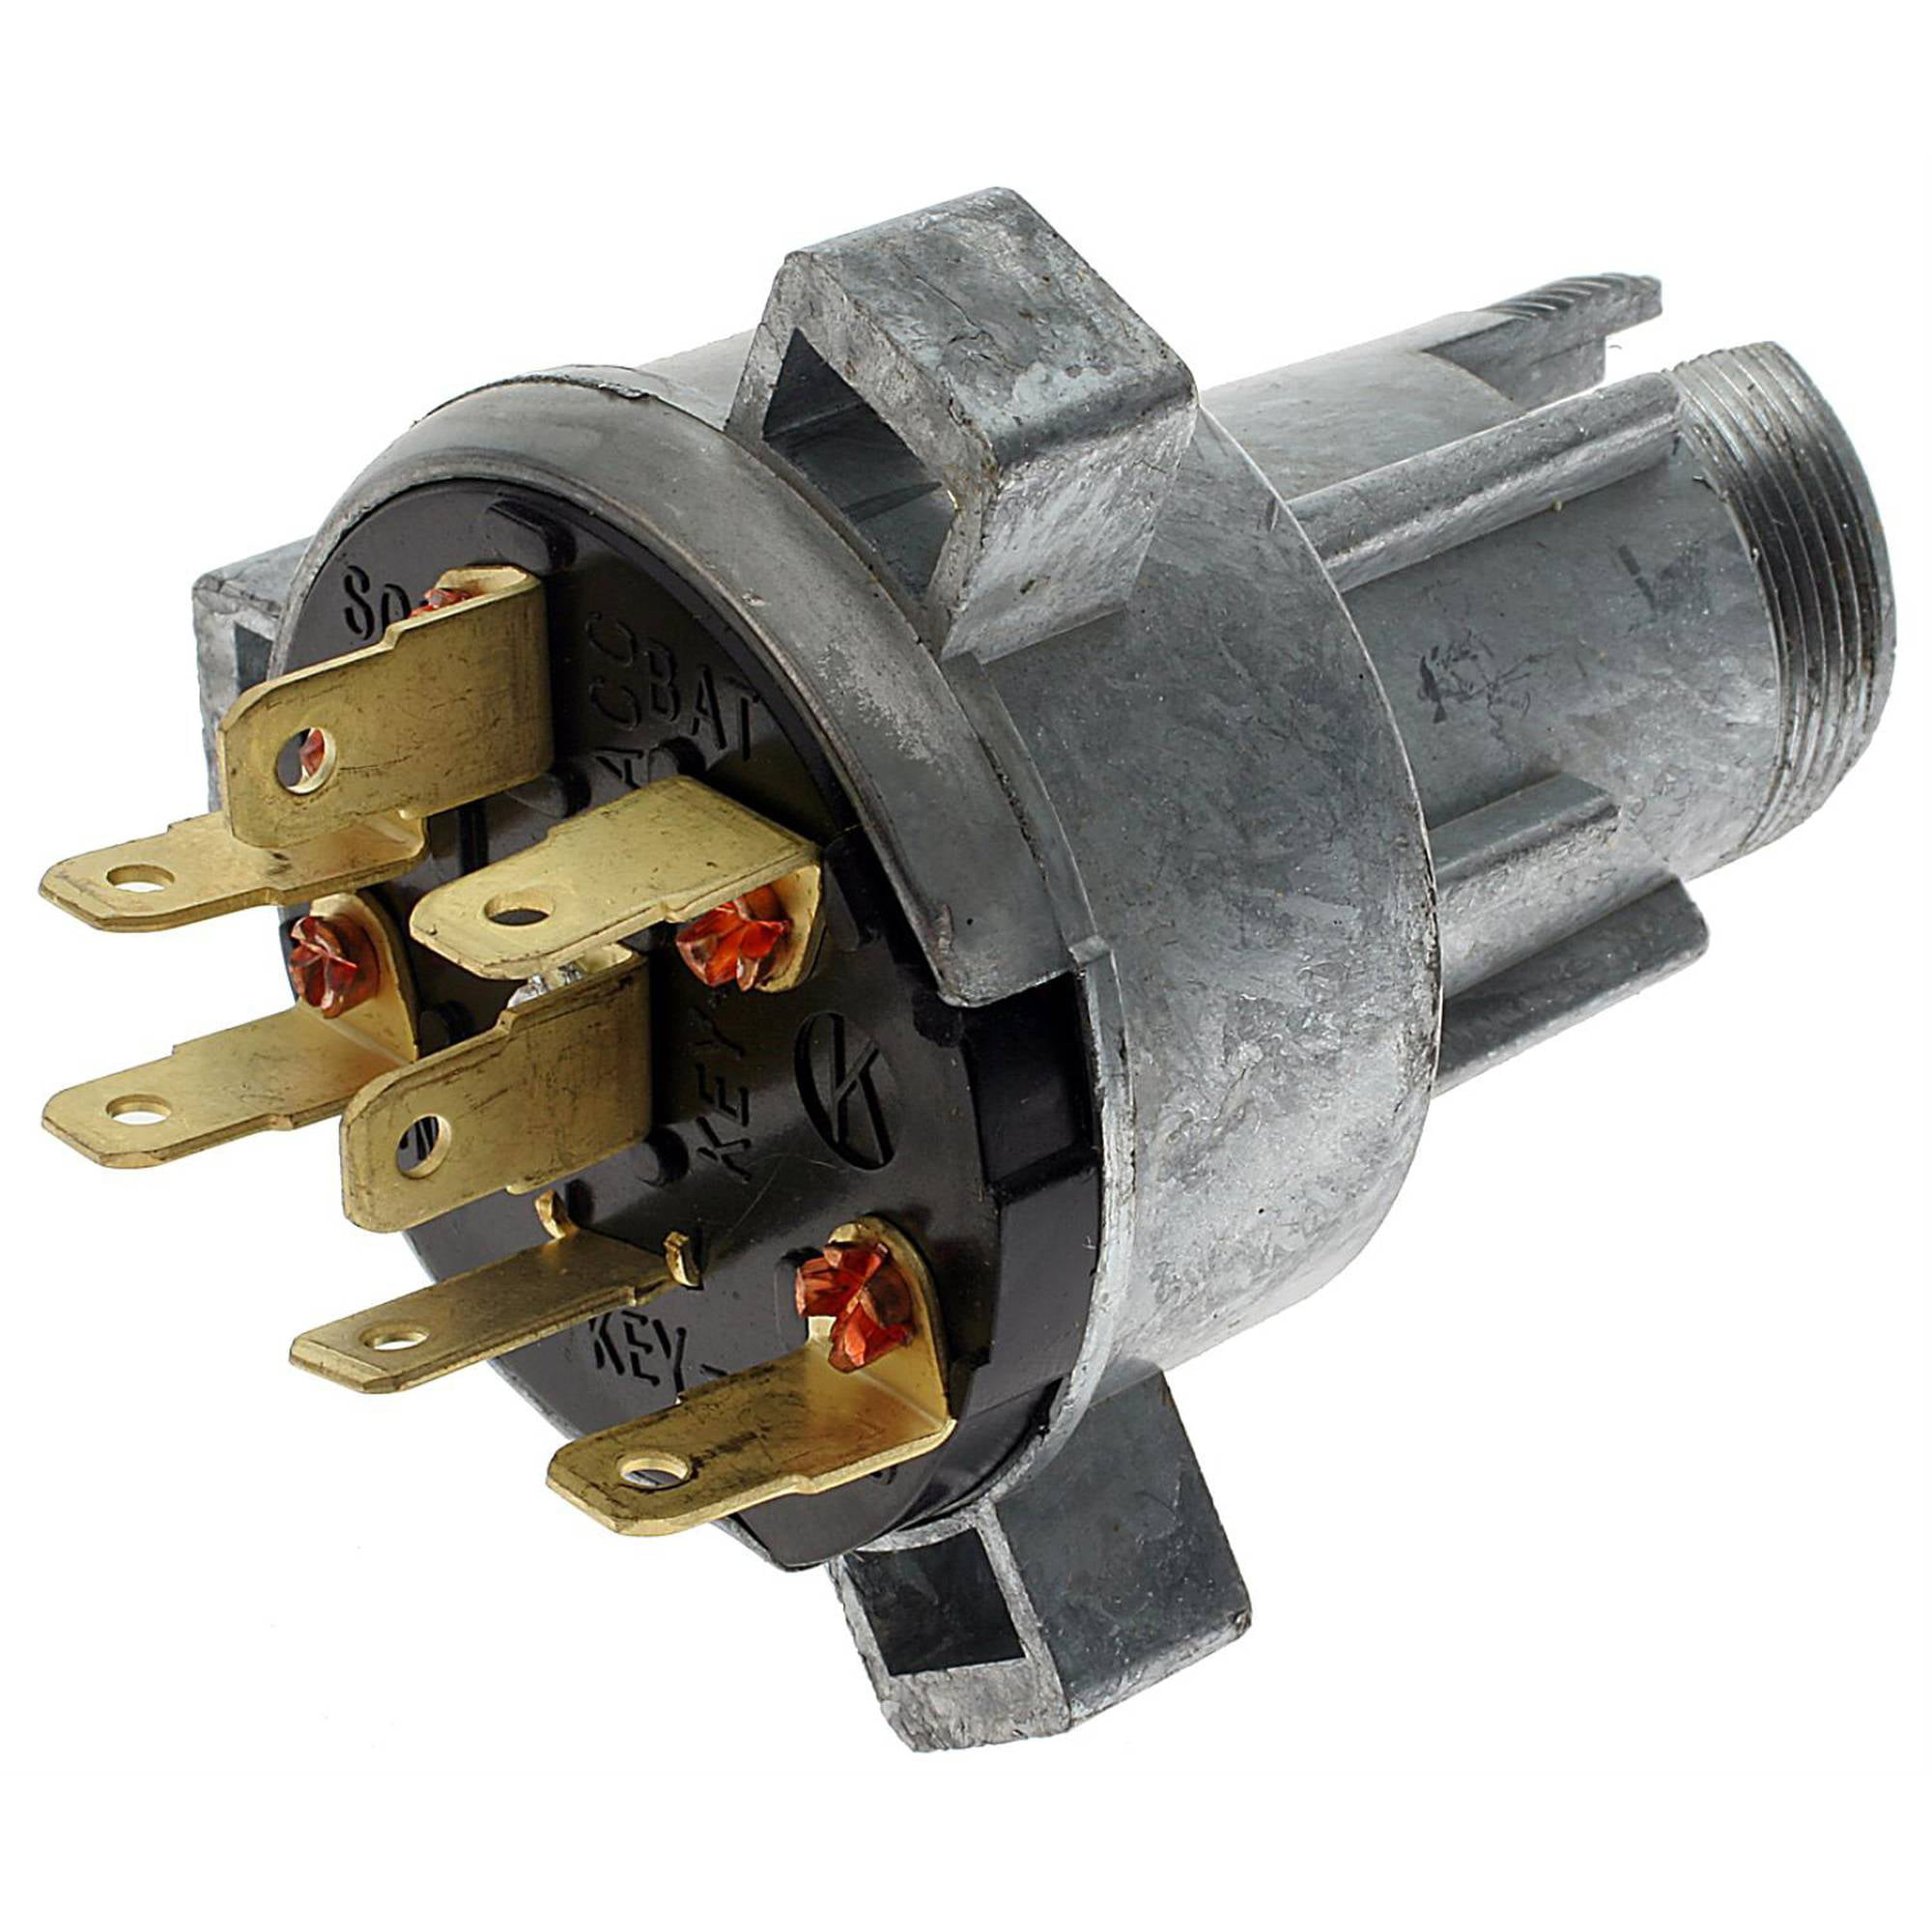 ACDelco D1415B Ignition Switch by ACDelco